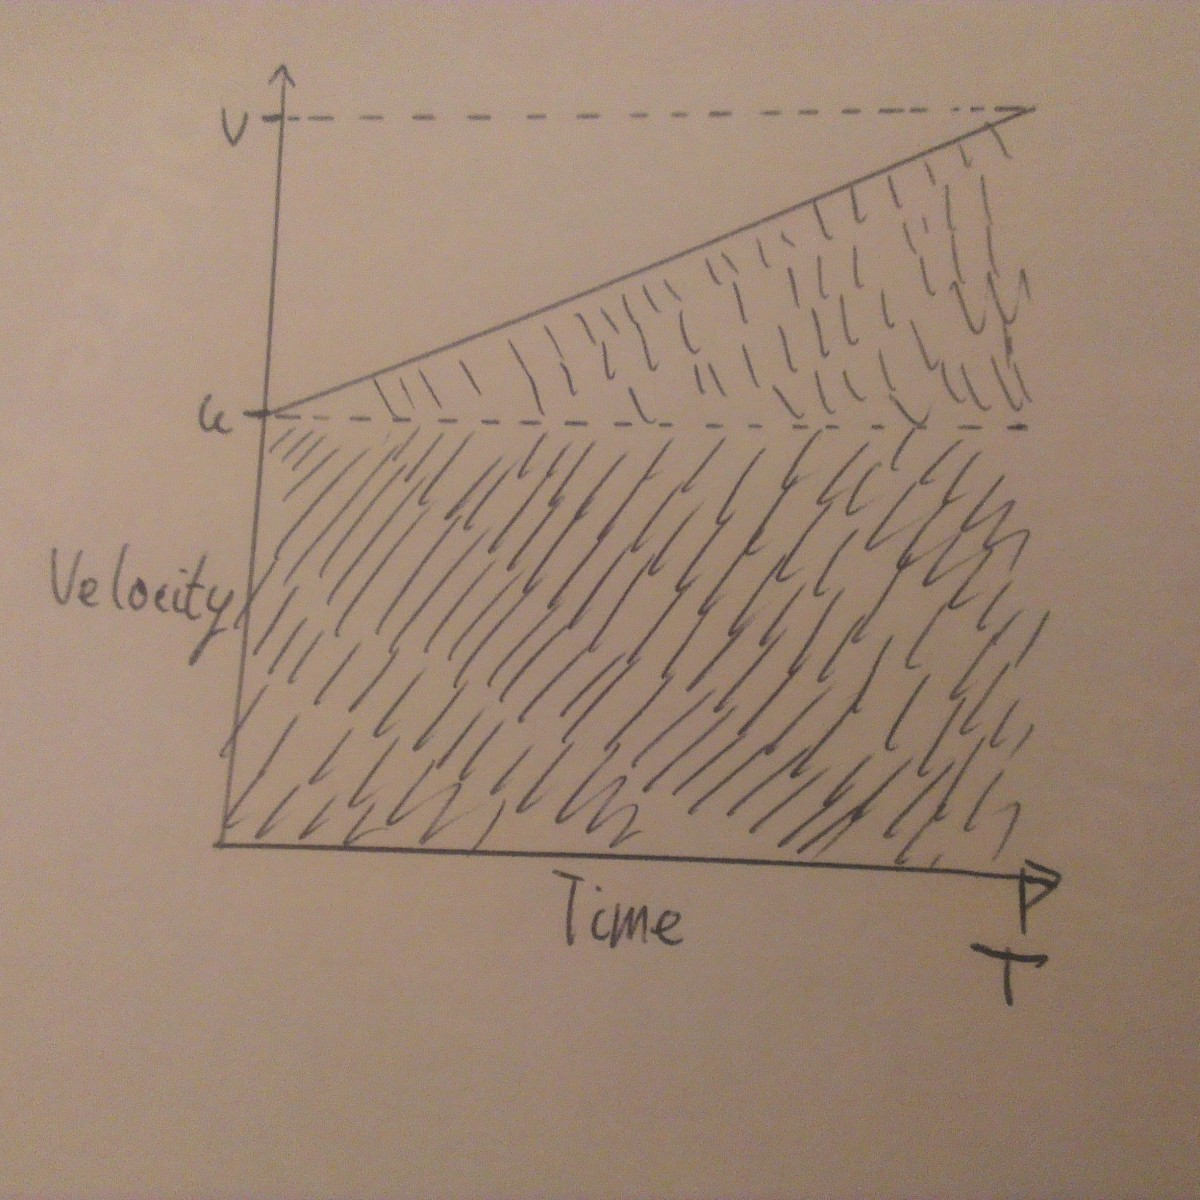 Velocity against Time Graph